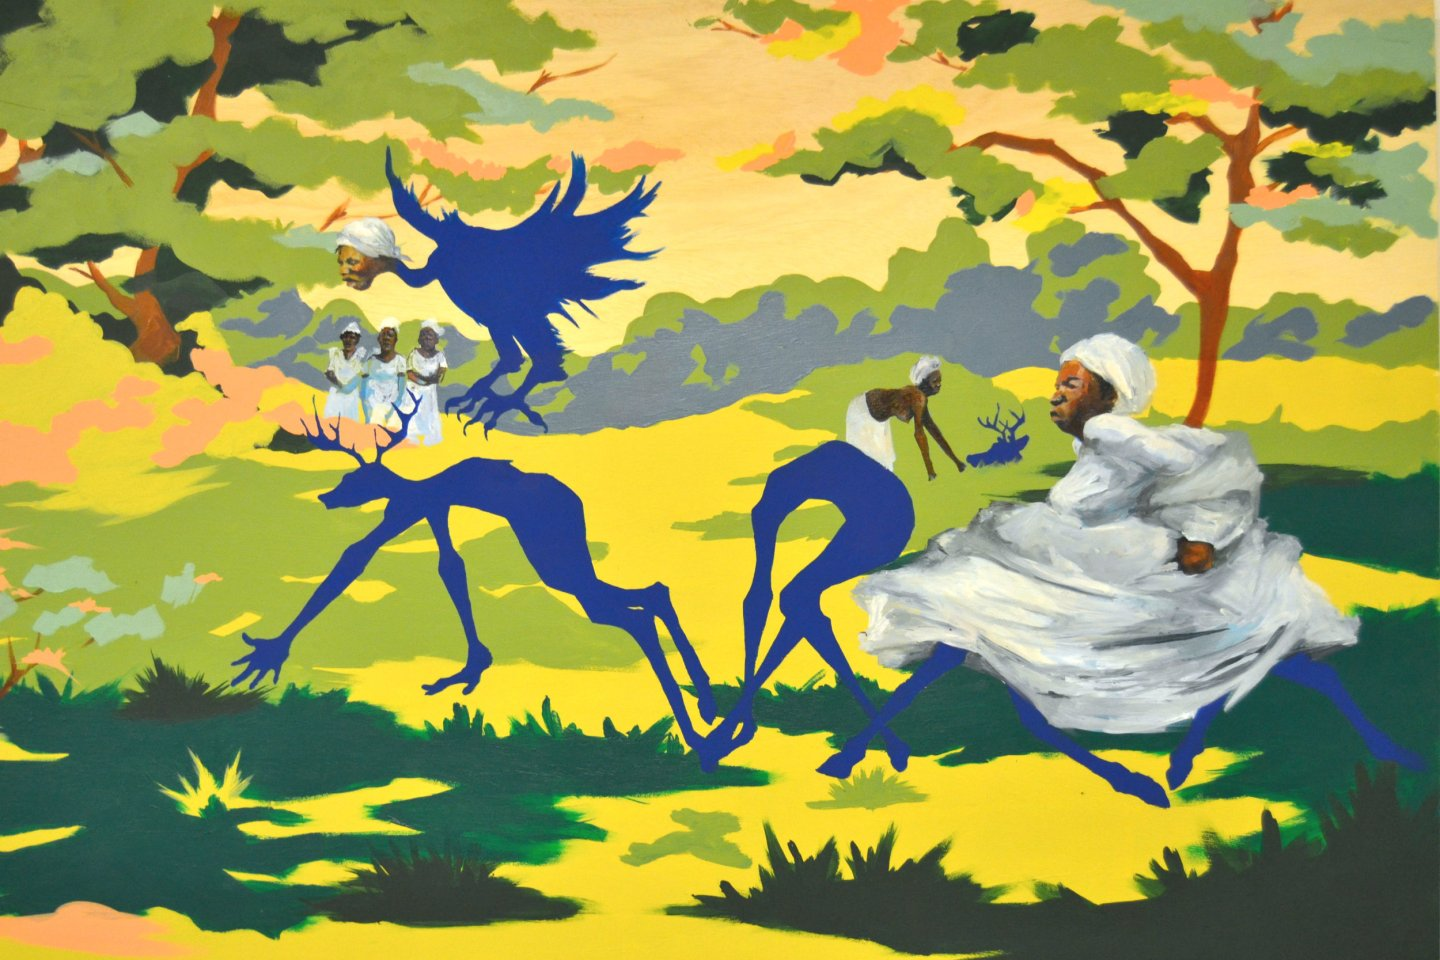 Shanequa-TALES-OF-THE-IMAGINARY-2017-50-x-36-Mixed-Media-Wood-Panel-1 10 Southern Black Women Artists to Watch from Expert Curator Jonell Logan